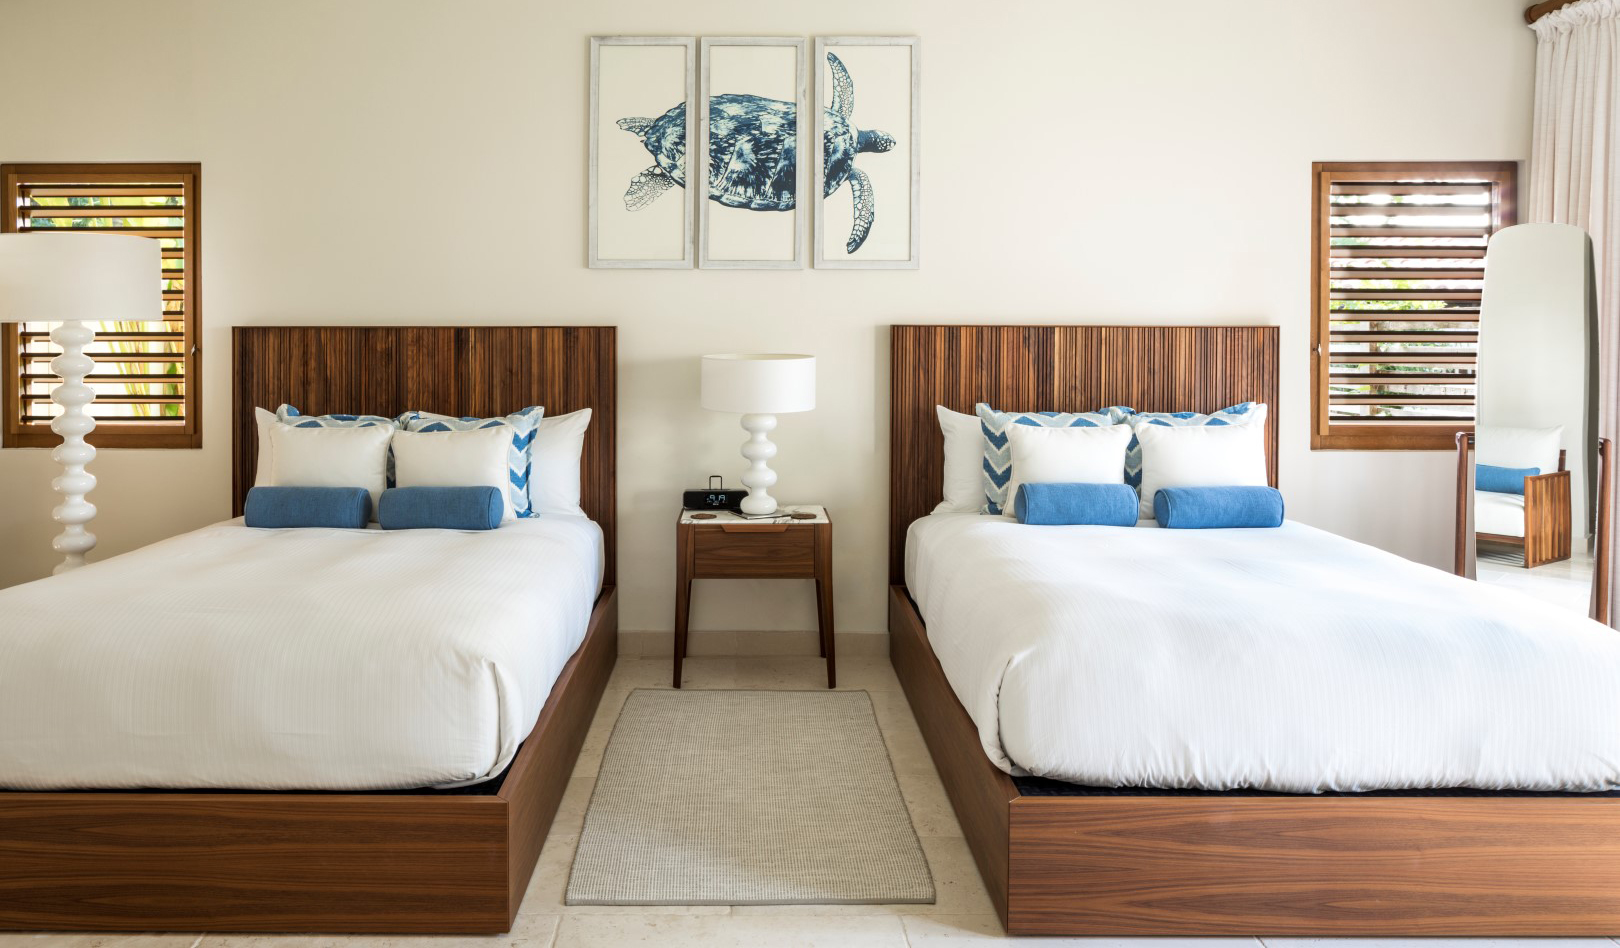 Bedroom with two beds and custom turtle artwork